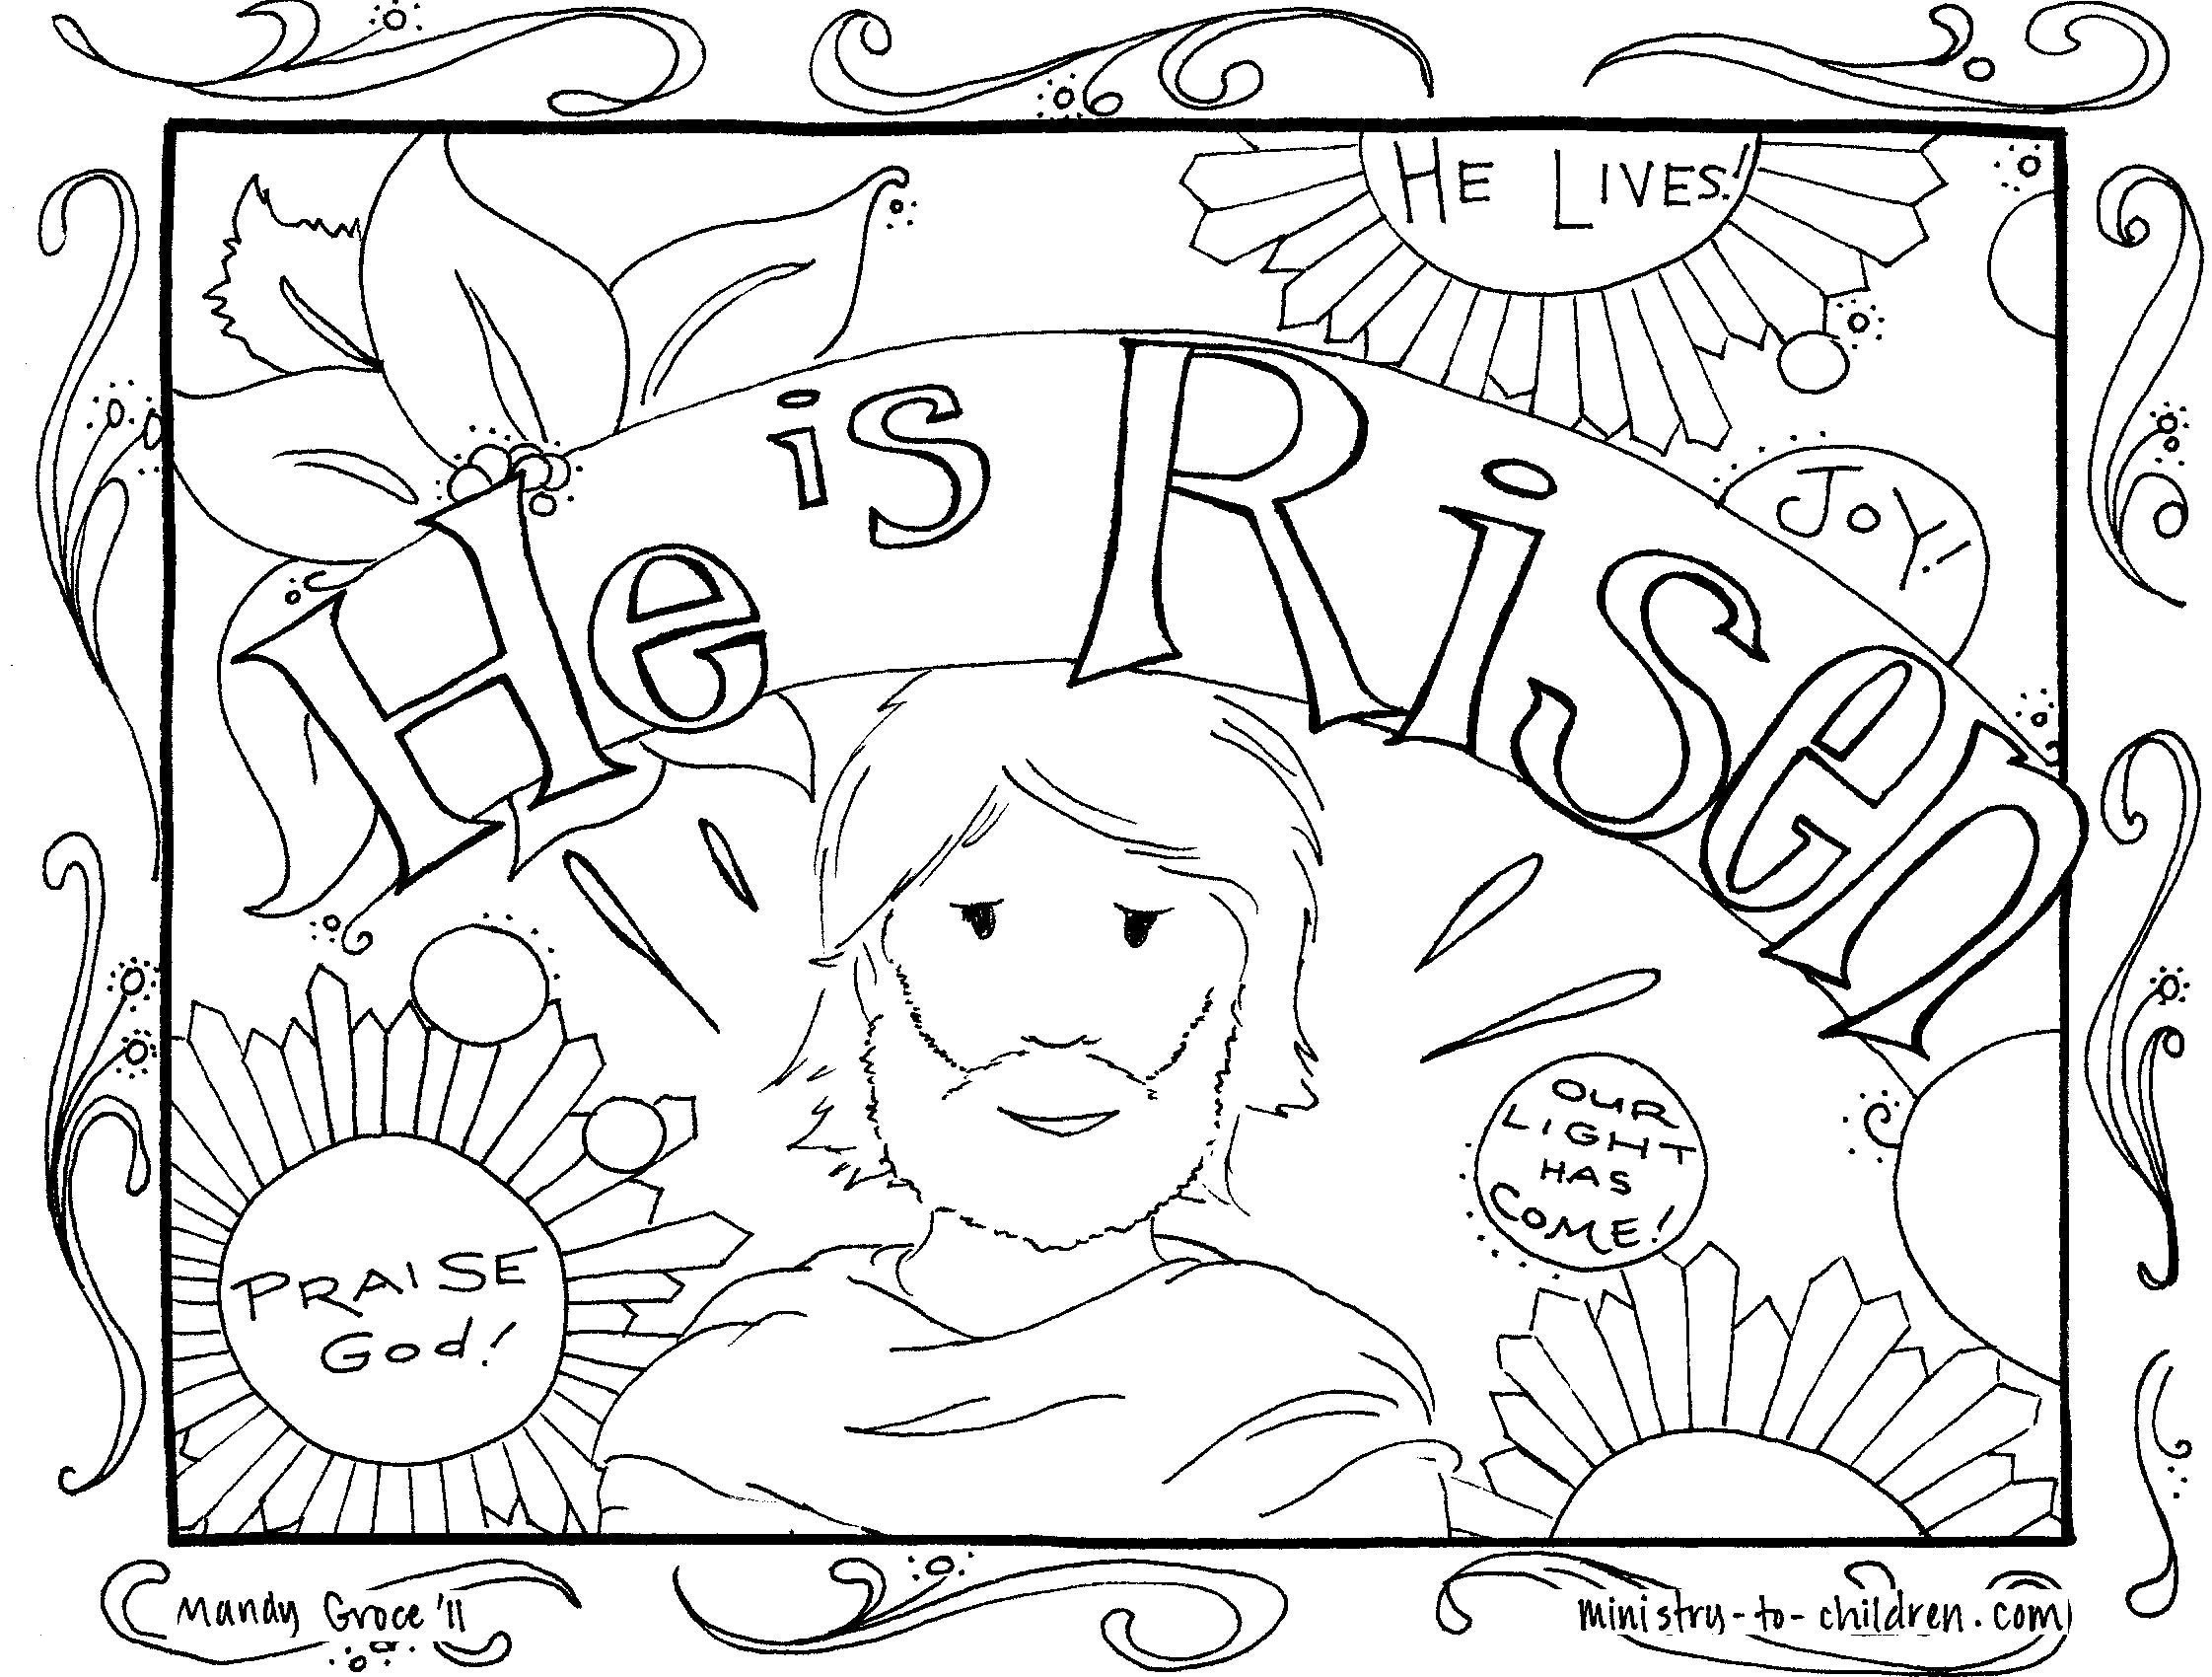 graphic about Christian Easter Coloring Pages Printable Free identify 26 Jesus Enjoys Me Coloring Web pages Printables Gallery